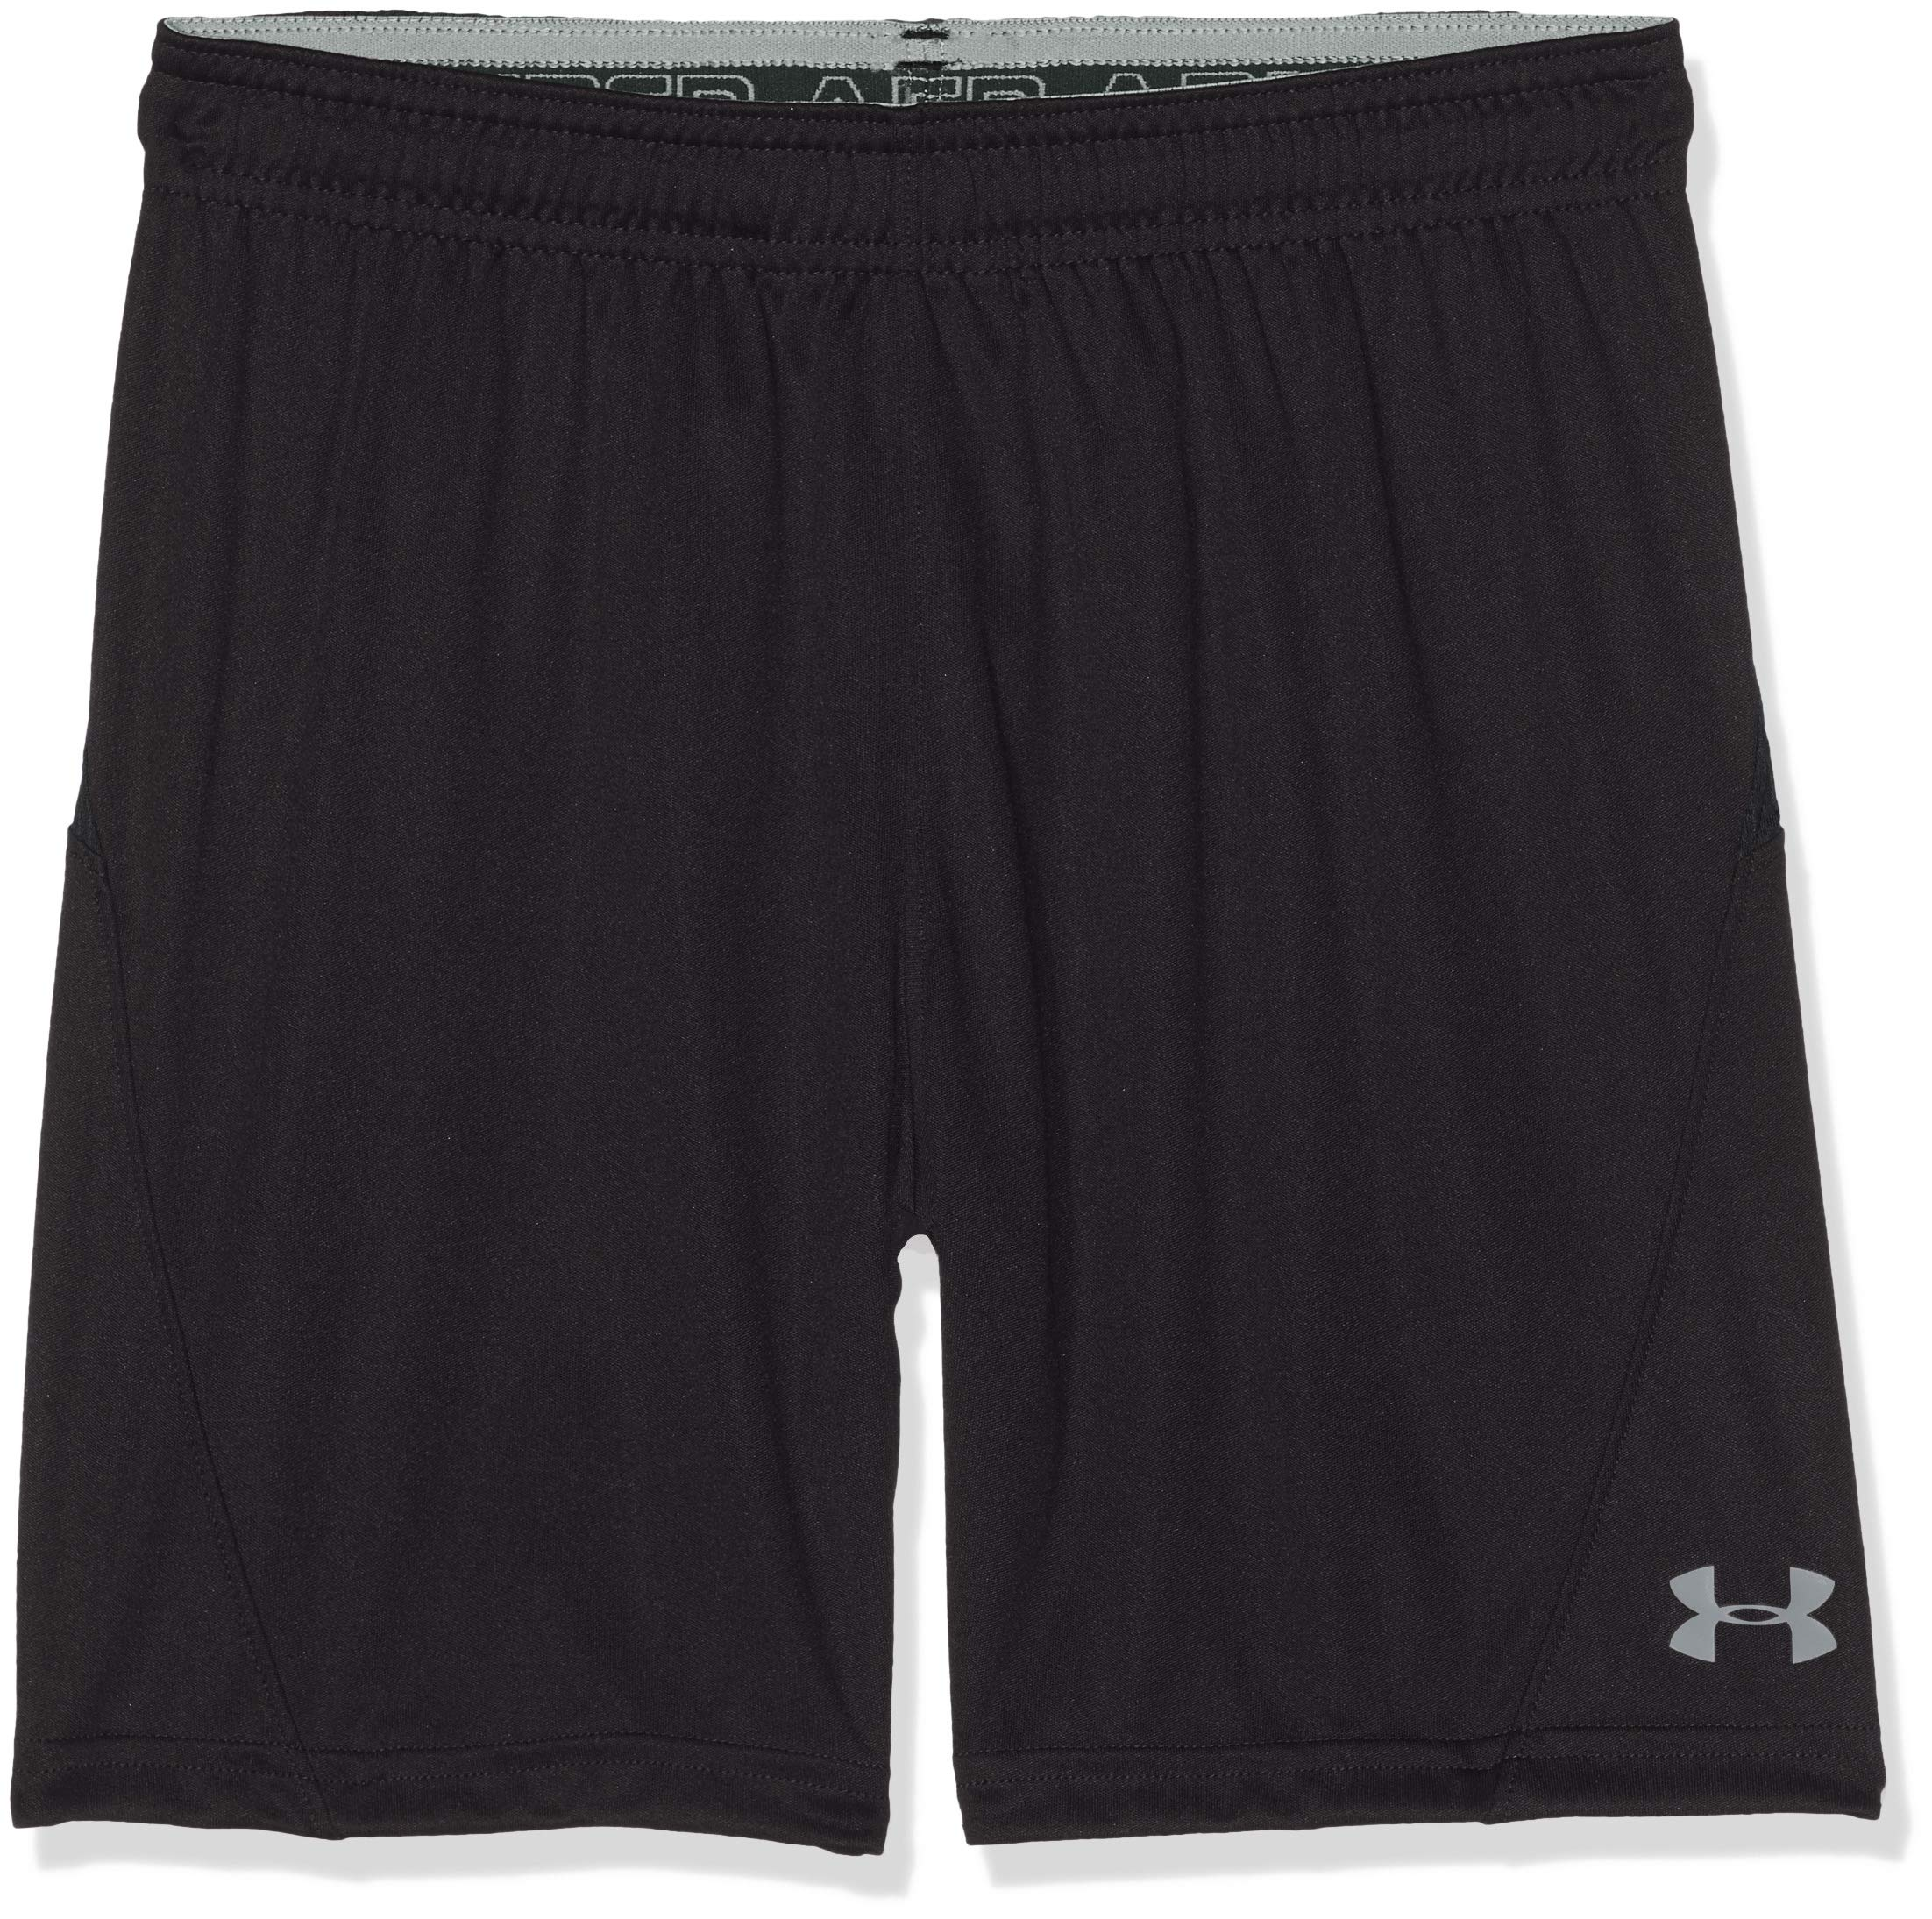 Under Armour Boys Challenger Knit Shorts, Black/Overcast Gray, Youth X-Small by Under Armour